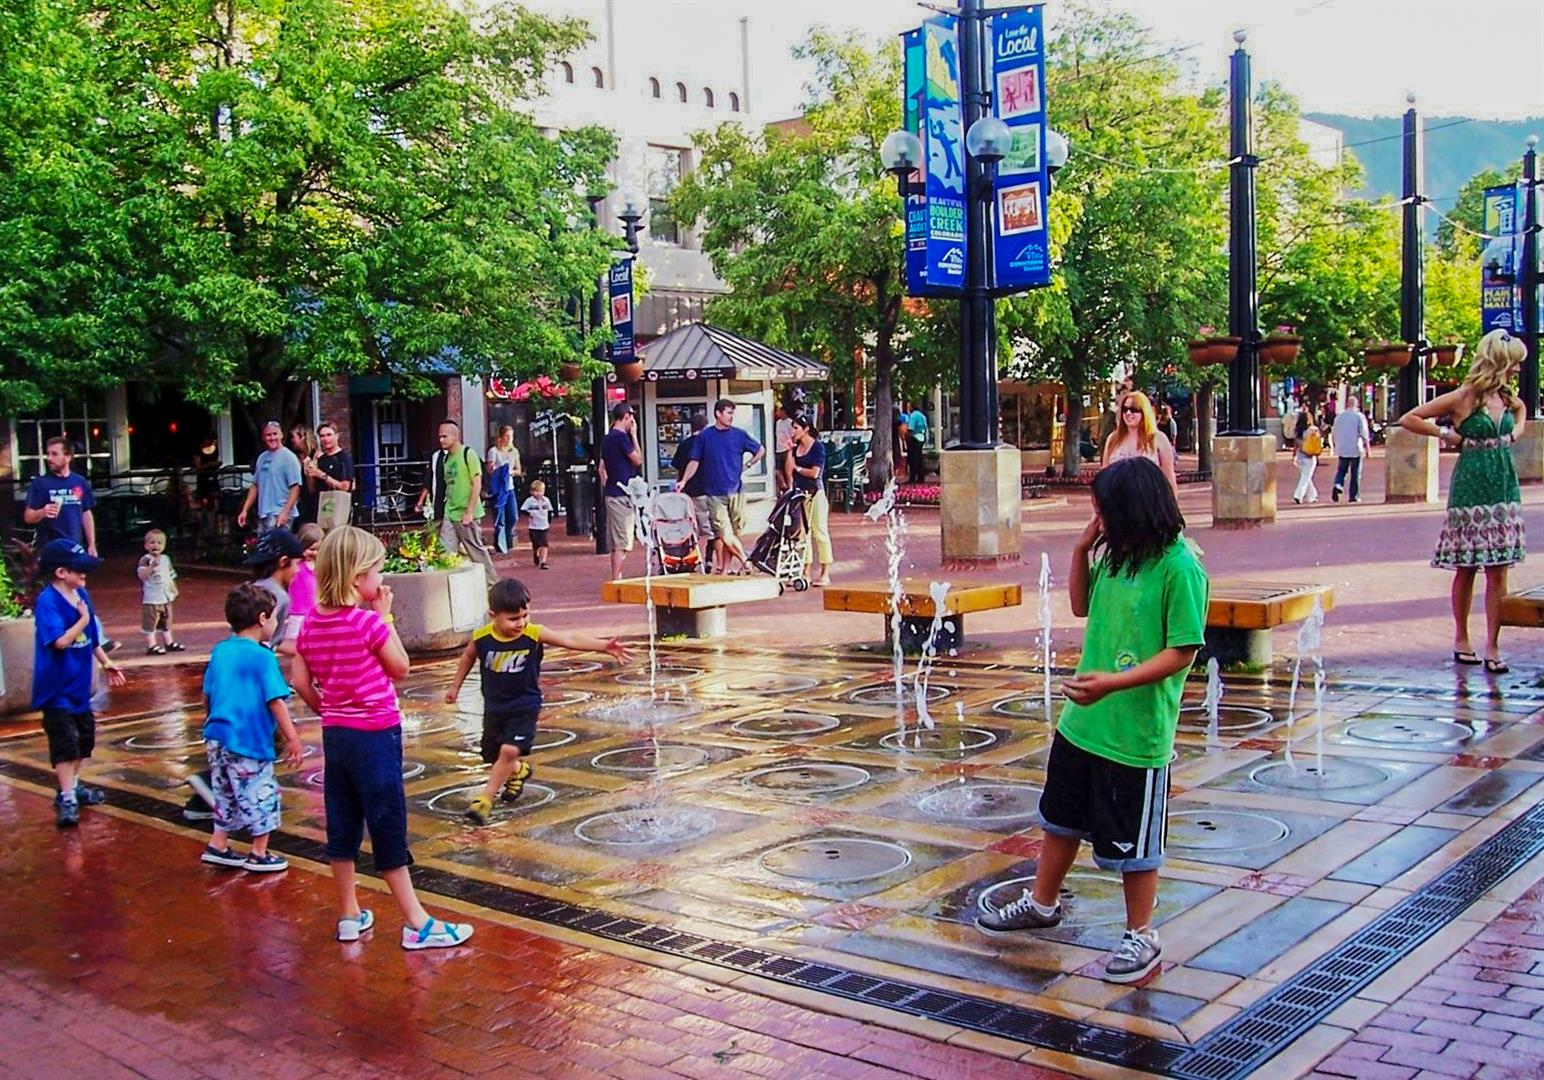 A splash park in the middle of an urban street